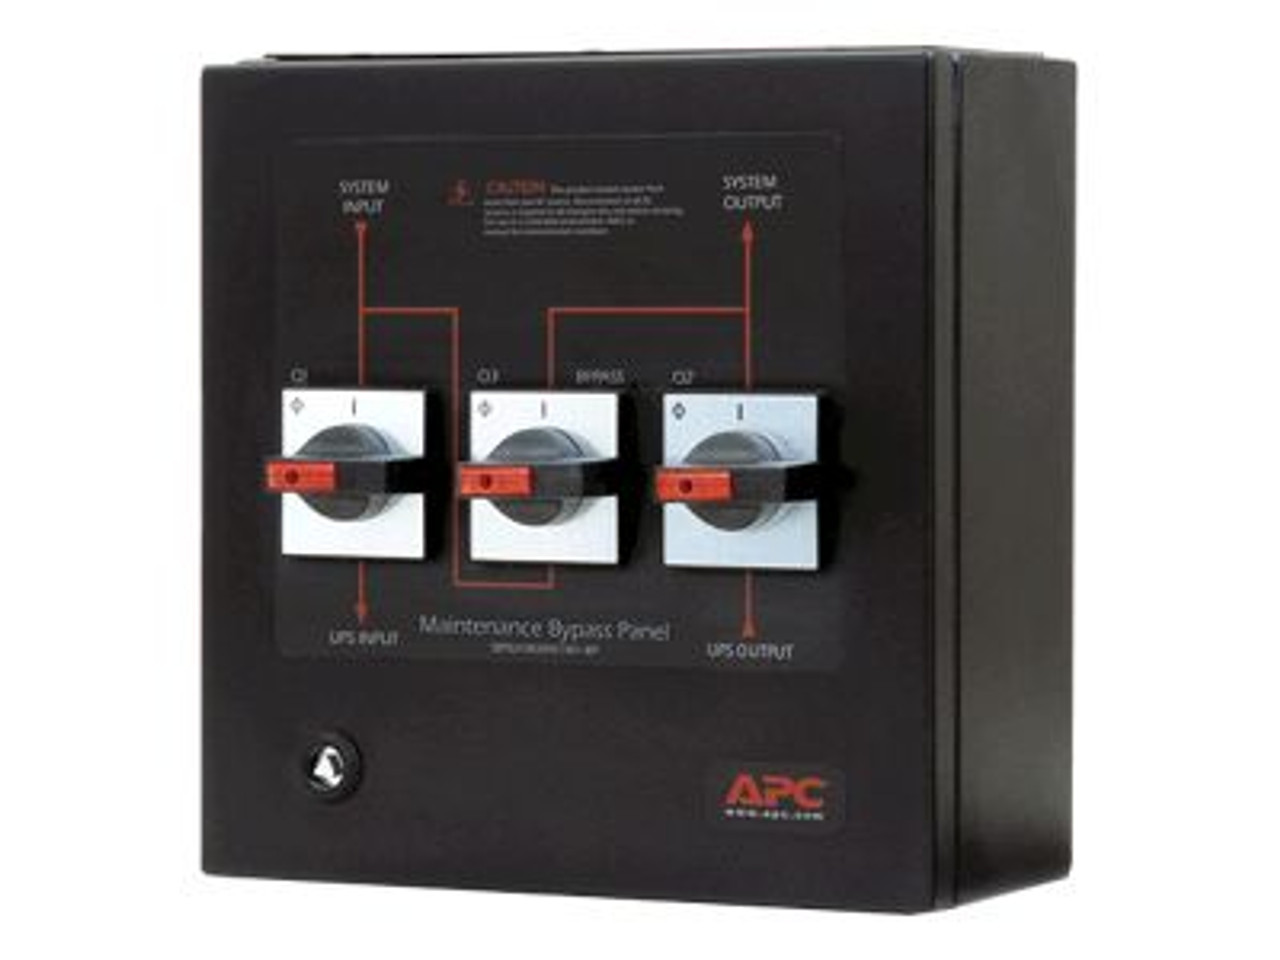 Image for APC Service Bypass Panel Bypass Switch - Wallmount CX Computer Superstore